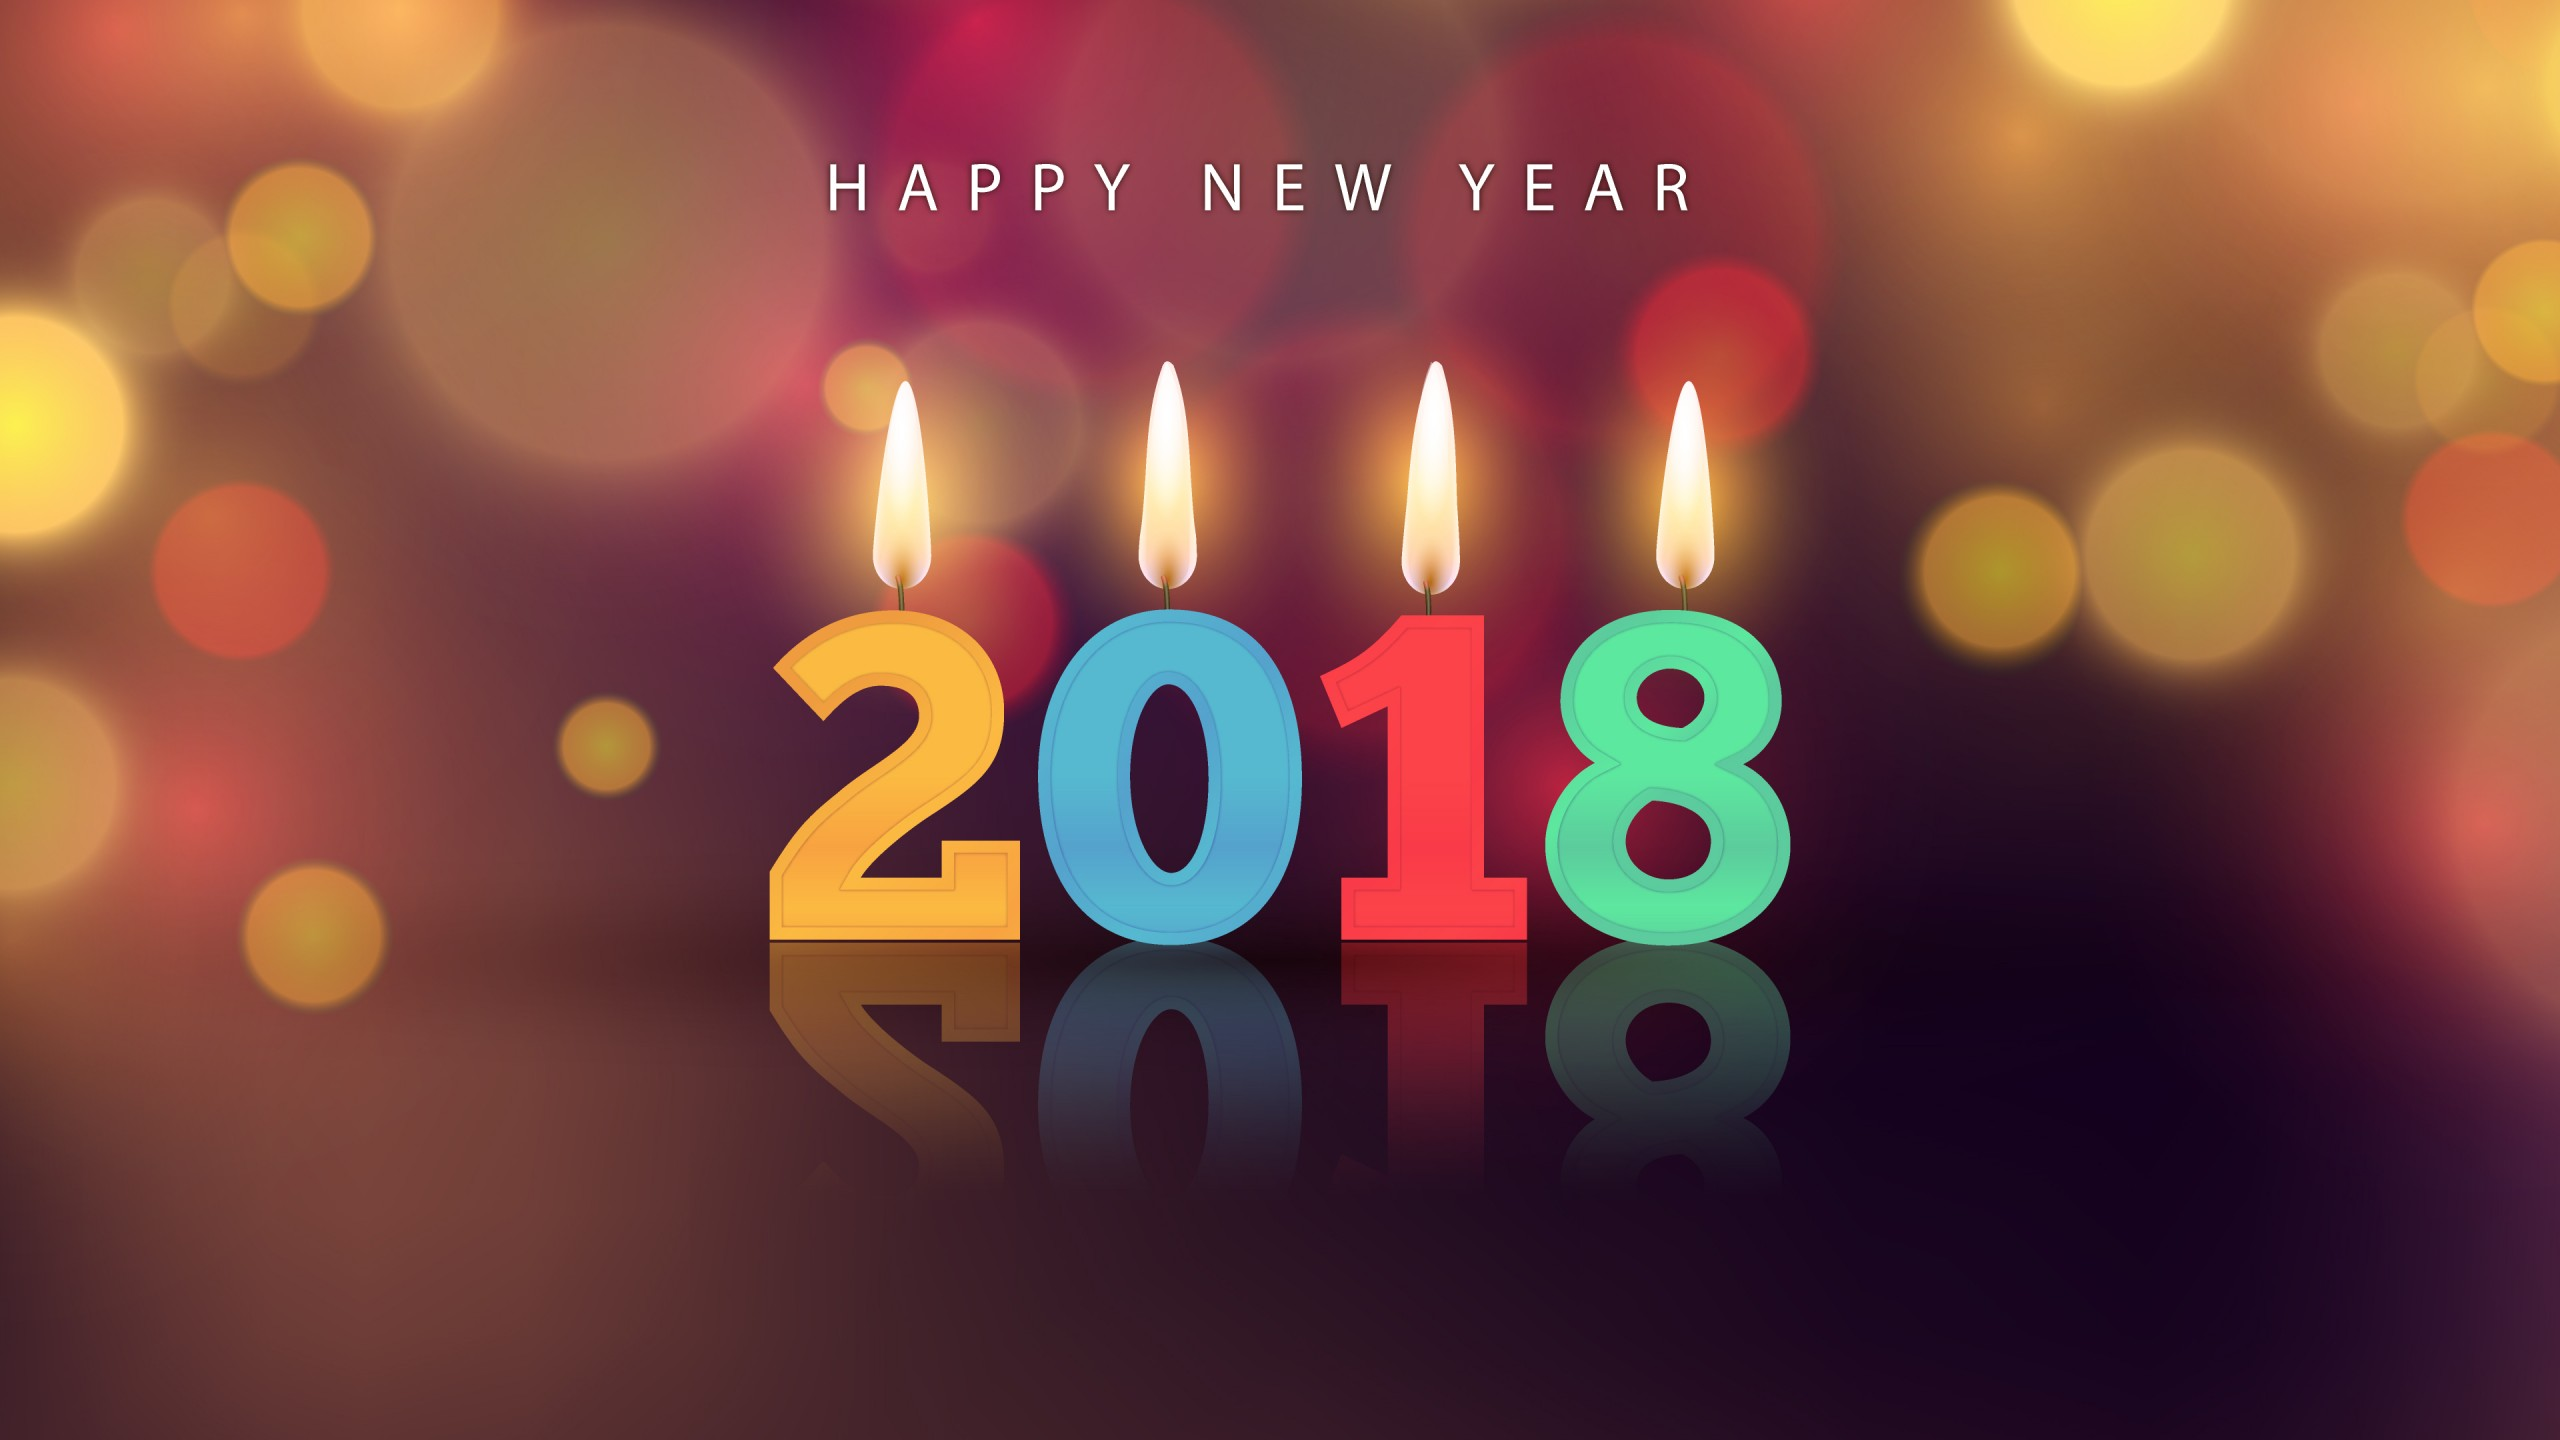 Happy New Year Wallpapers 2018 HD Images - Free Download 1